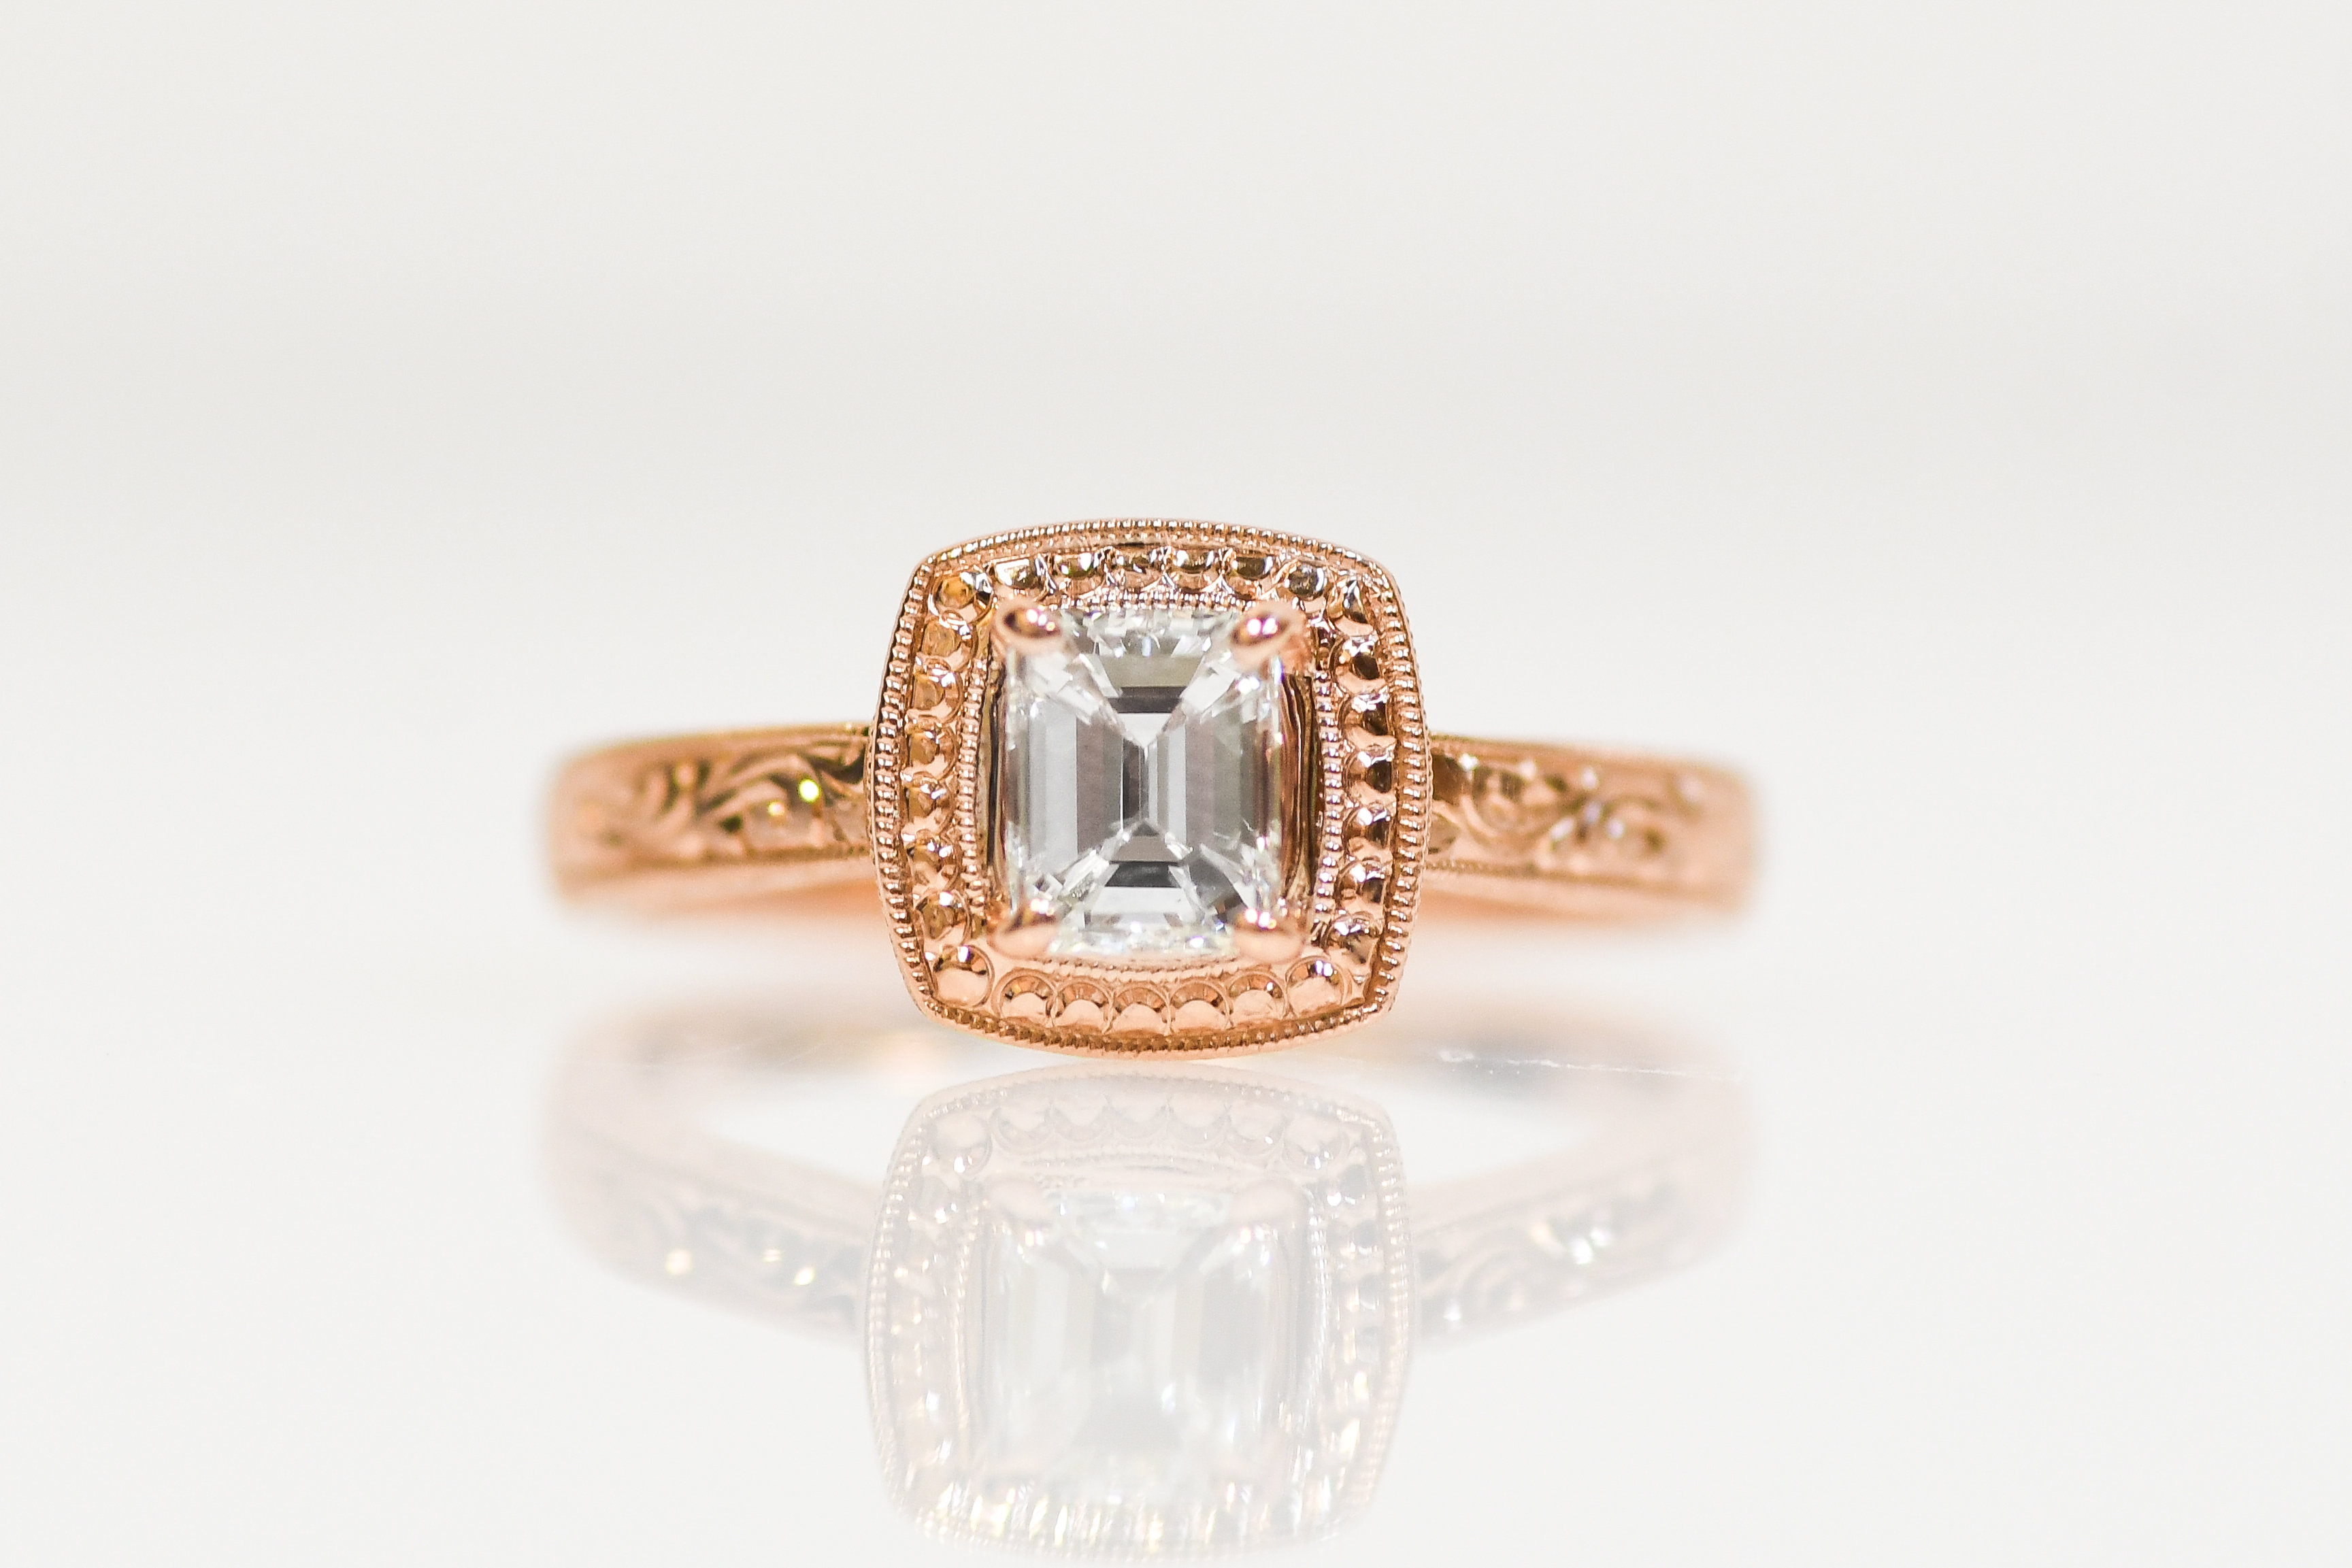 69aedbd1c7e2c 14K Rose Gold Emerald Cut Diamond Hand Engraved Solitaire Engagement Ring